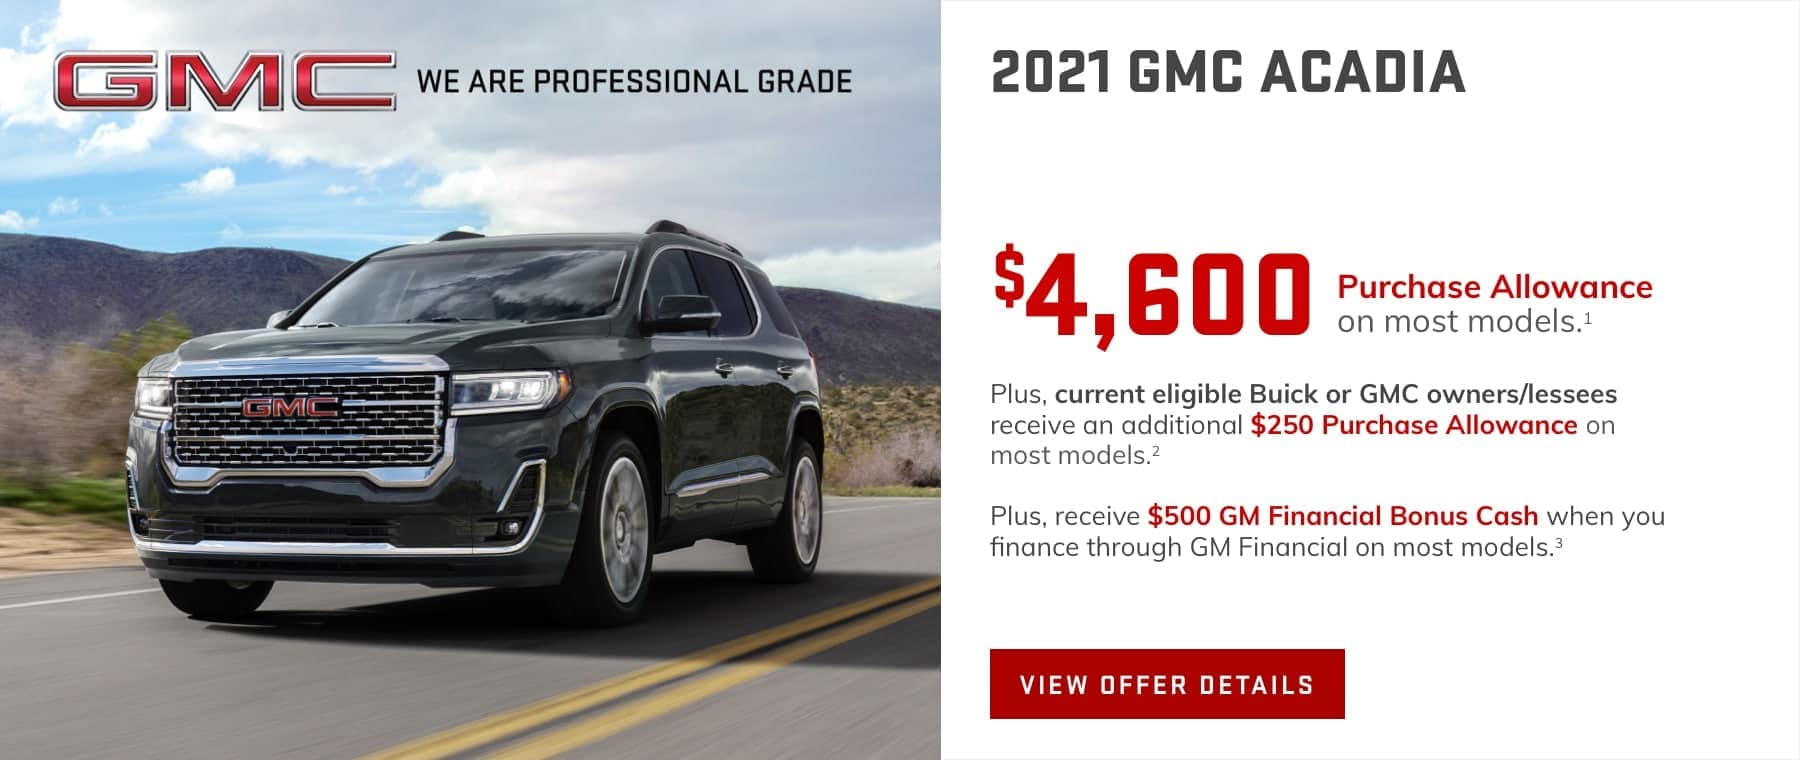 $4,600 Purchase Allowance on most models.1 Plus, current eligible Buick or GMC owners/lessees receive an additional $250 Purchase Allowance on most models.2 Plus, receive $500 GM Financial Bonus Cash when you finance through GM Financial on most models.3